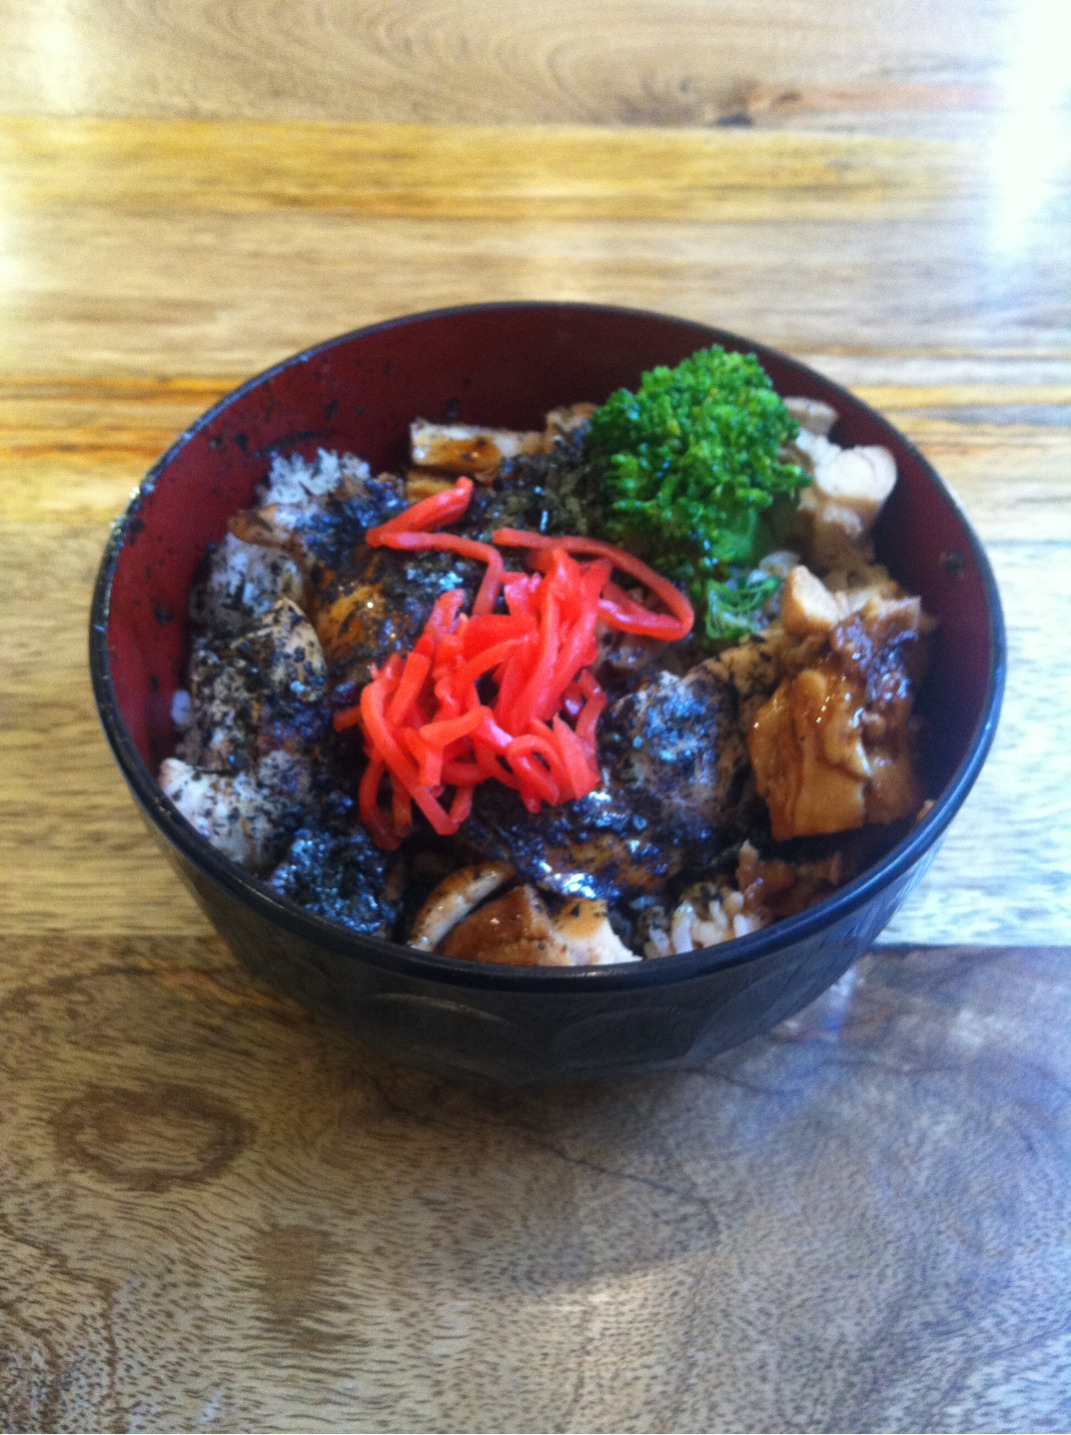 Chicken teriyaki with rice- so much flavour and so much chicken in one bowl for $6.70. Cheap as chips!